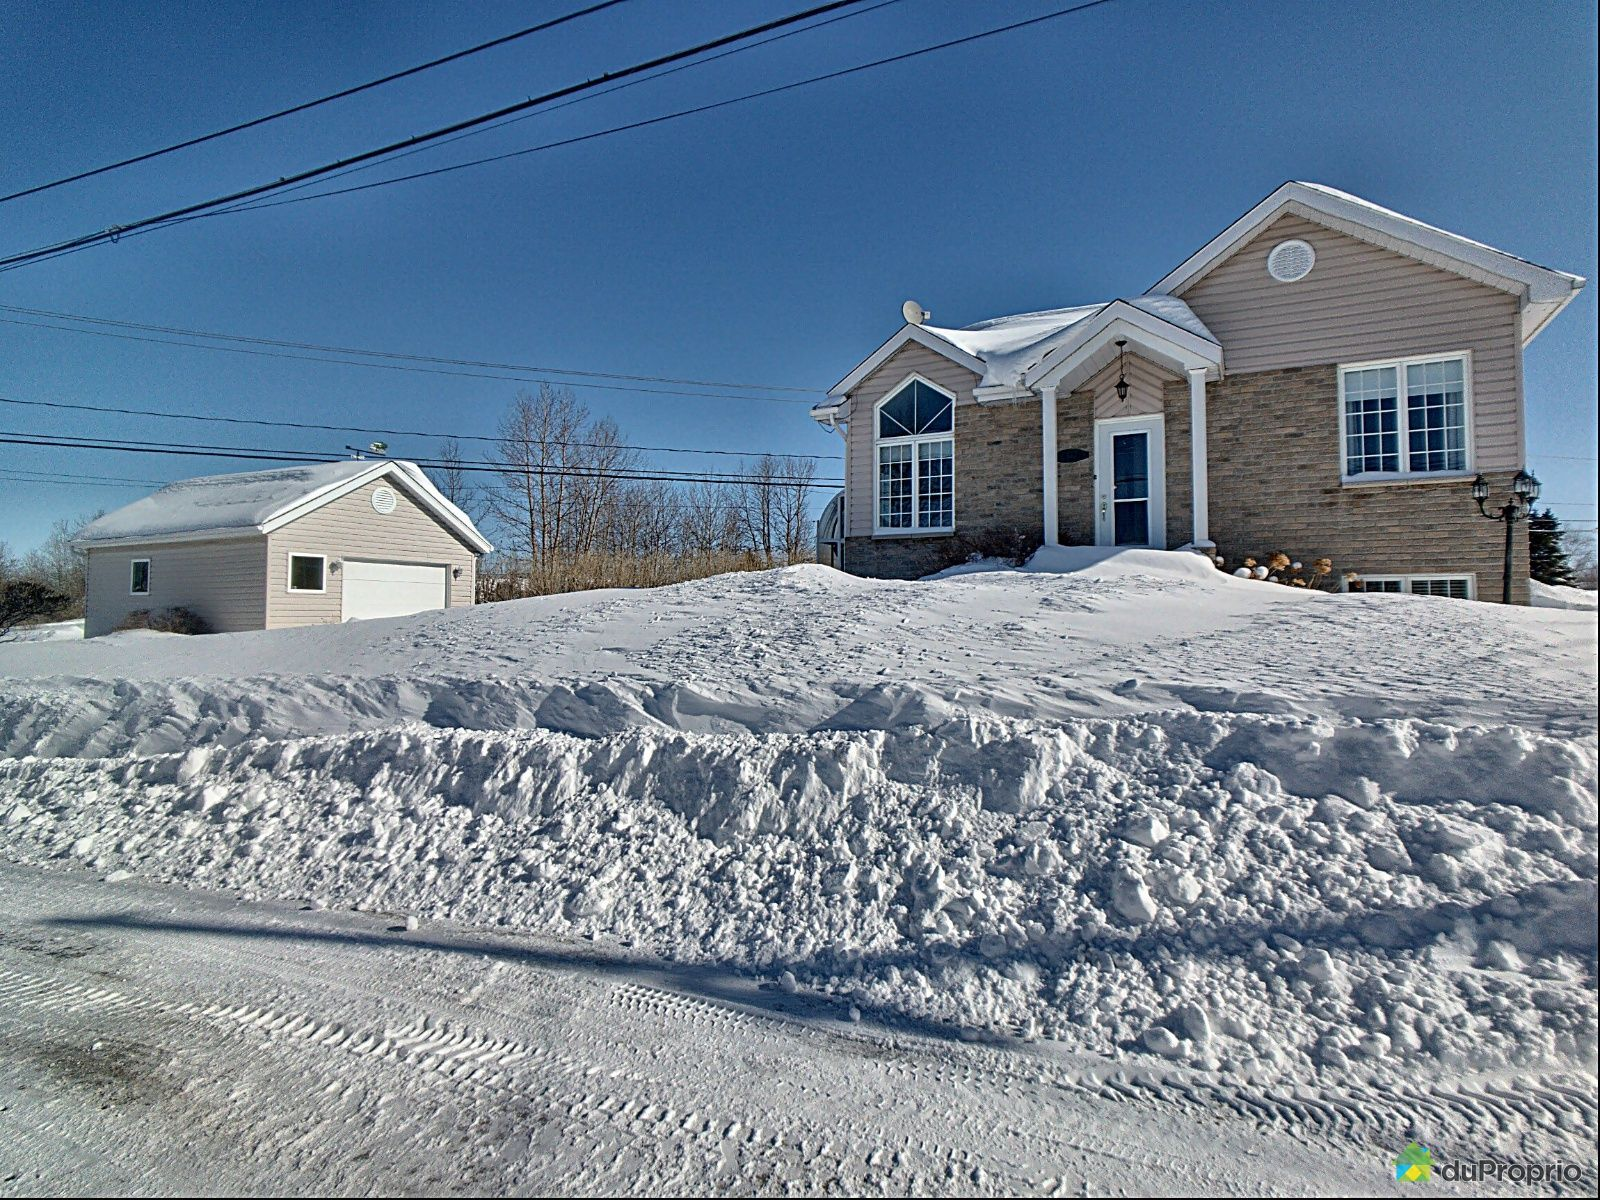 Overall View - 1428 rue Bellevue Nord, St-Félicien for sale